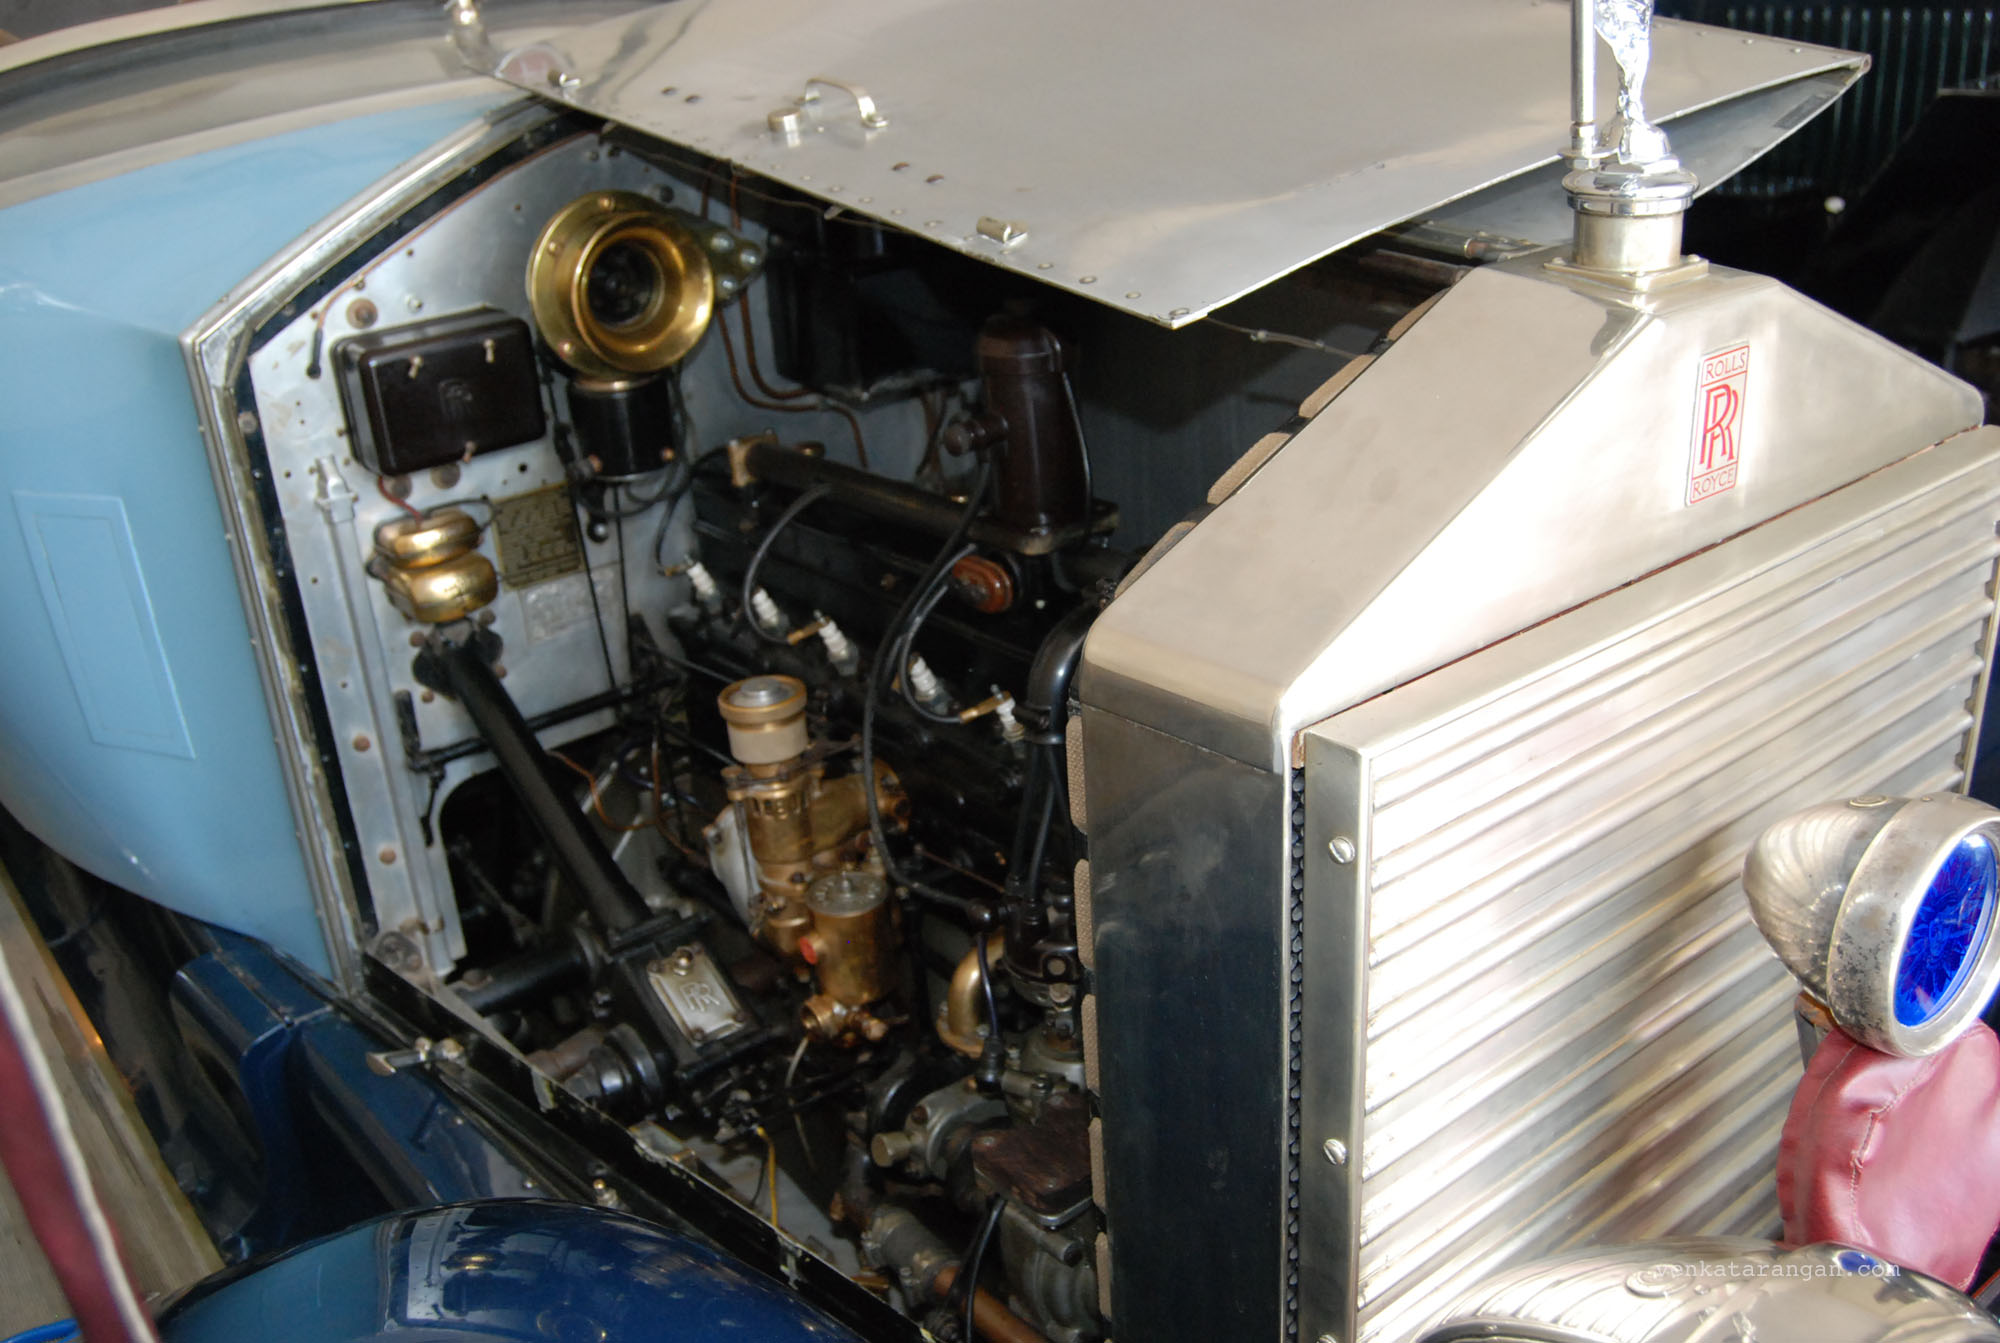 Rolls Royce engine in view at the Vintage Car Museum Udaipur